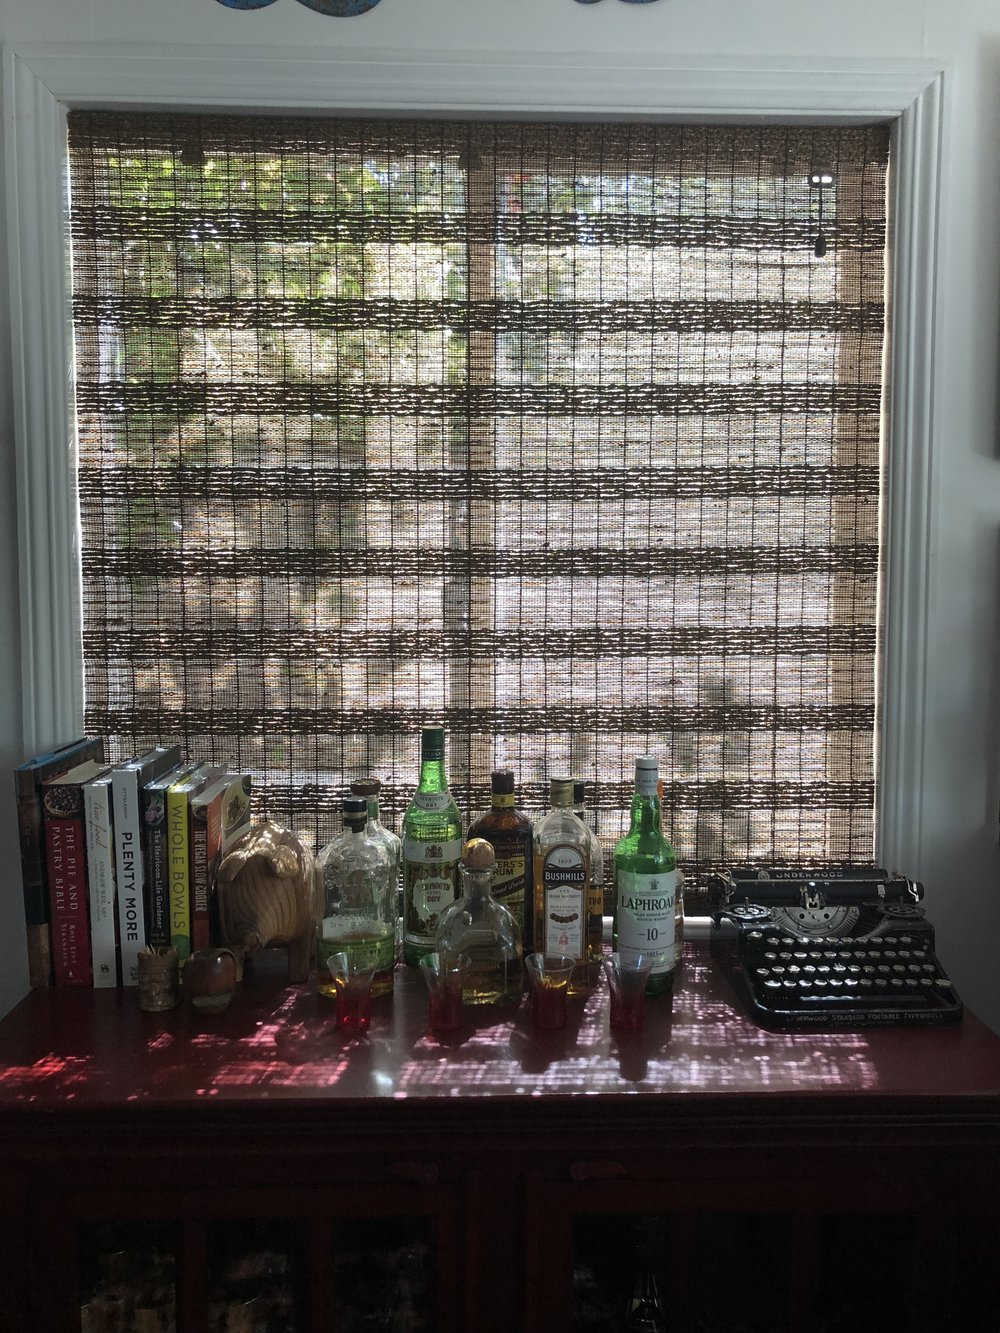 Our Interior Designers Will Help You Choose The Perfect Shades, Blinds Or  Drapery For Your Home. Call Us Today For An In Home Consultation  707 210 6611.